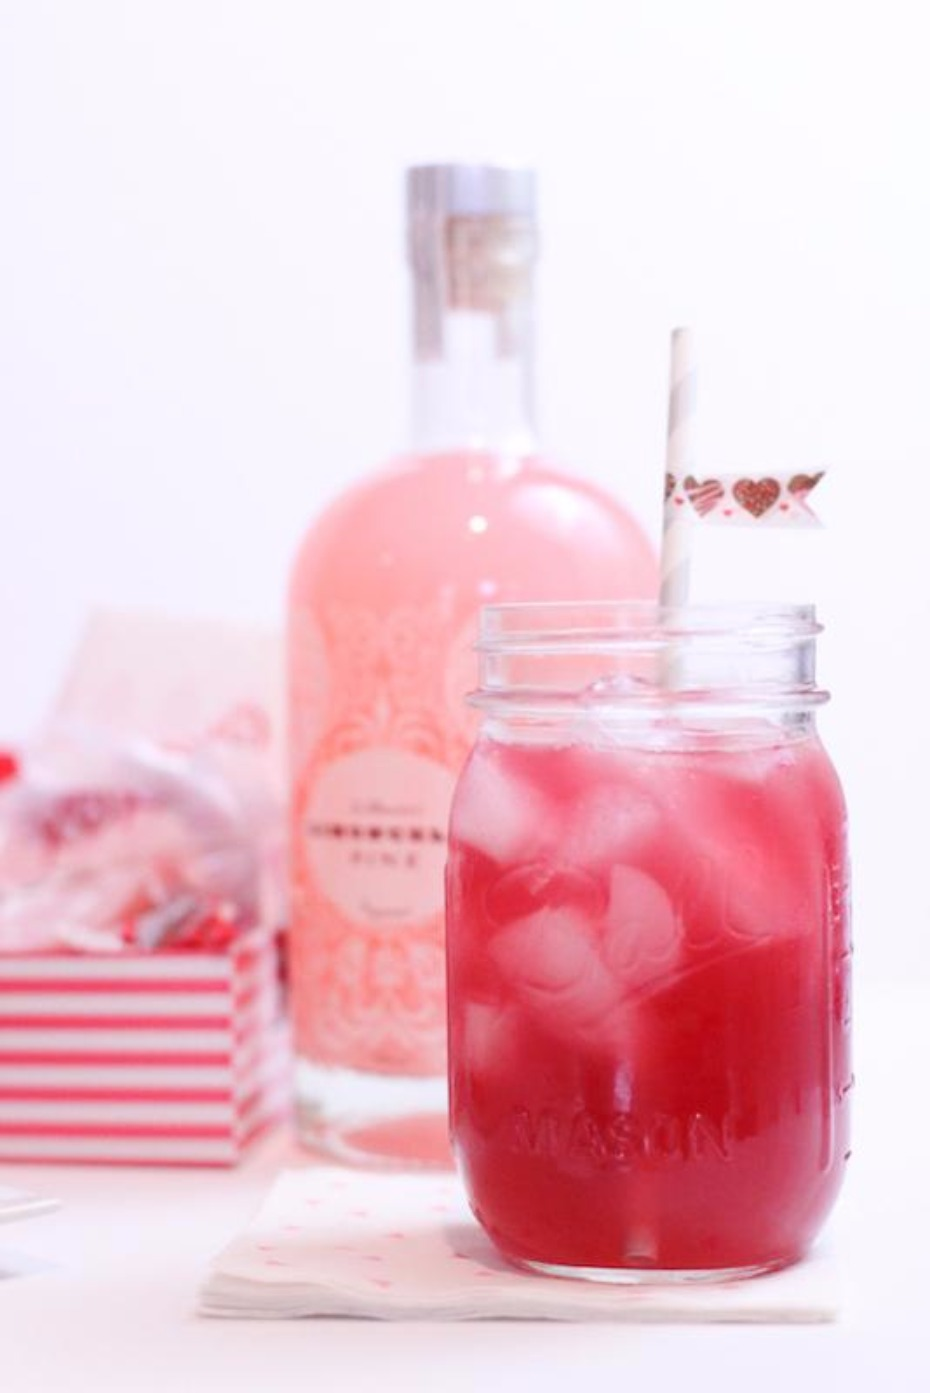 Pink Lemon Liqueur cocktail